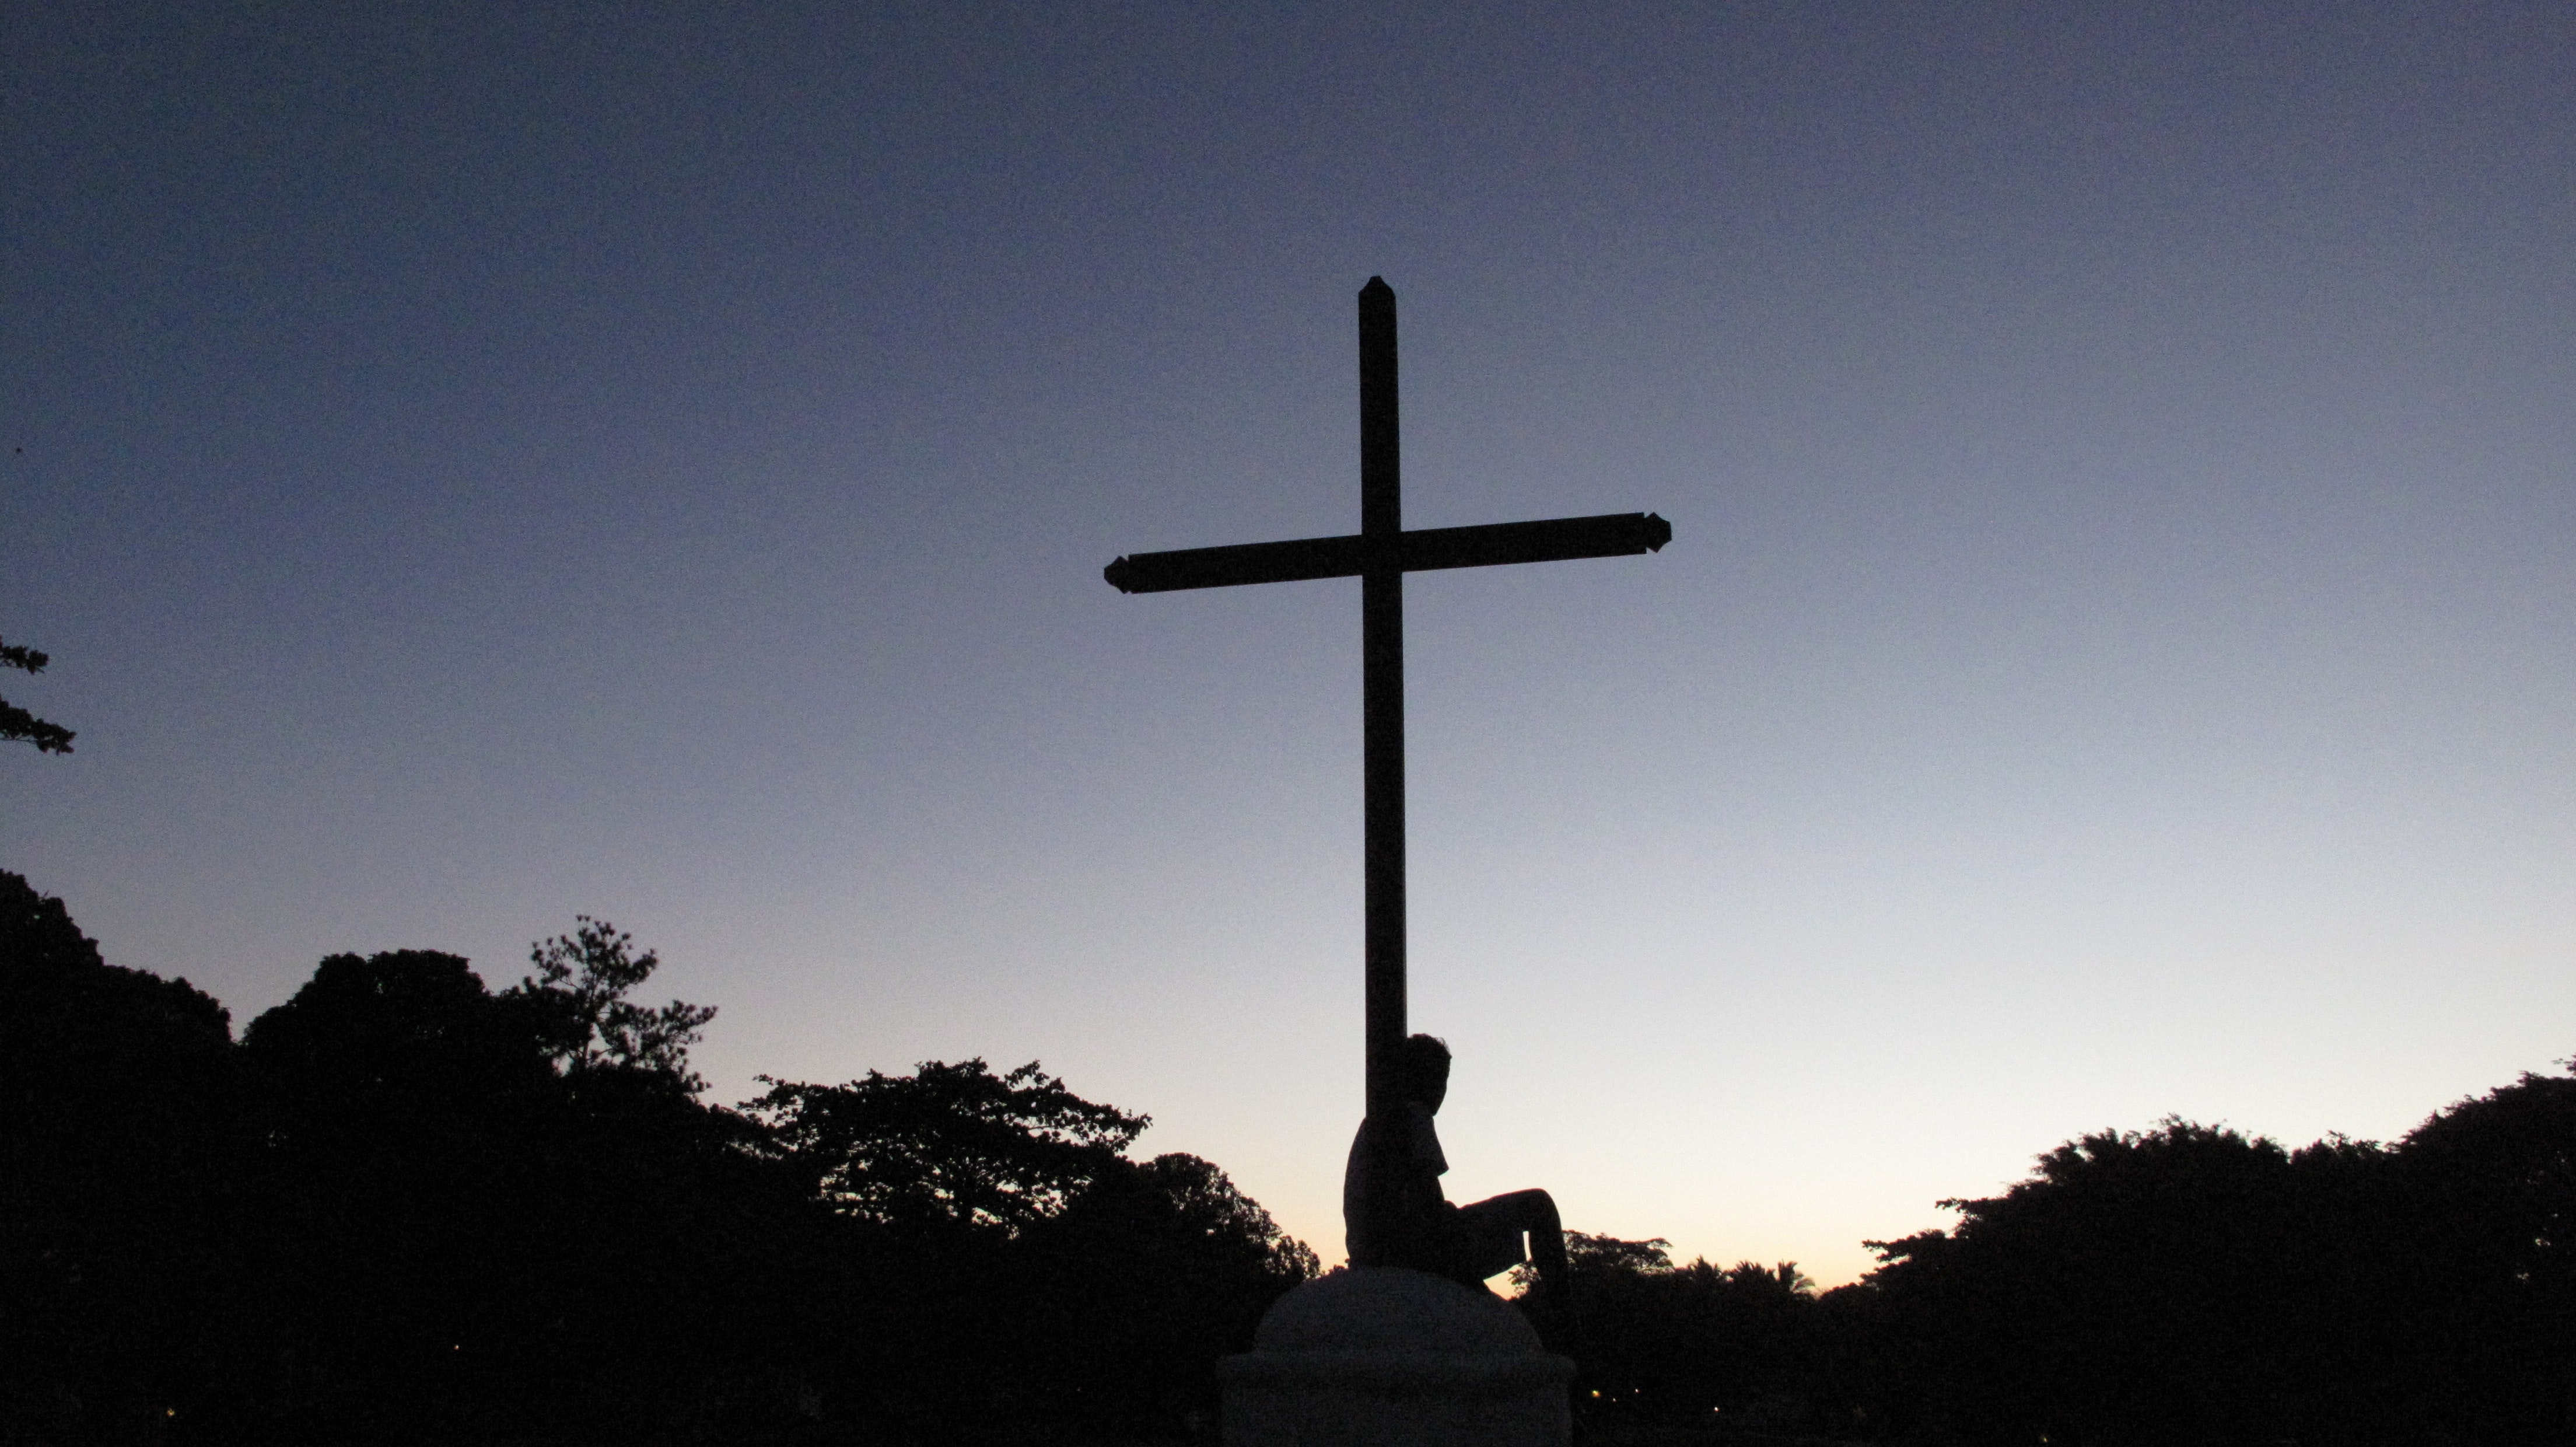 silhouette of person sitting below cross